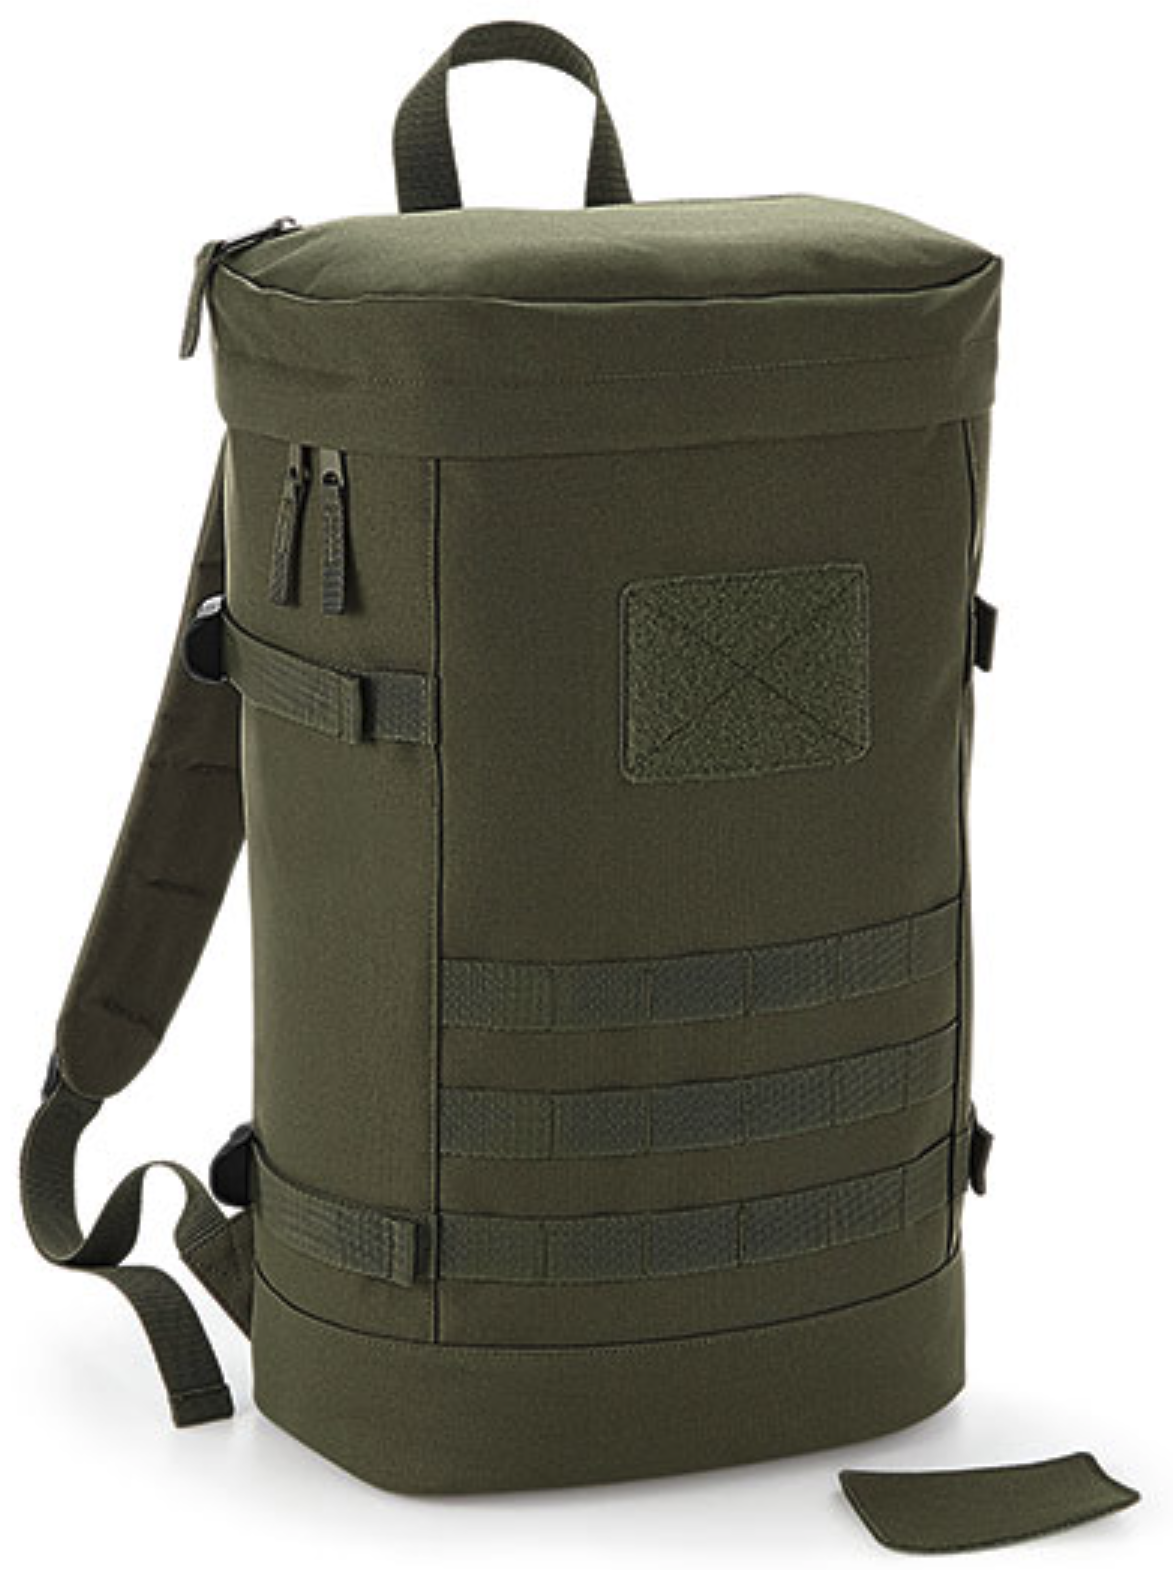 BG845_MOLLE_Utility_Backpack_Military_Green_02